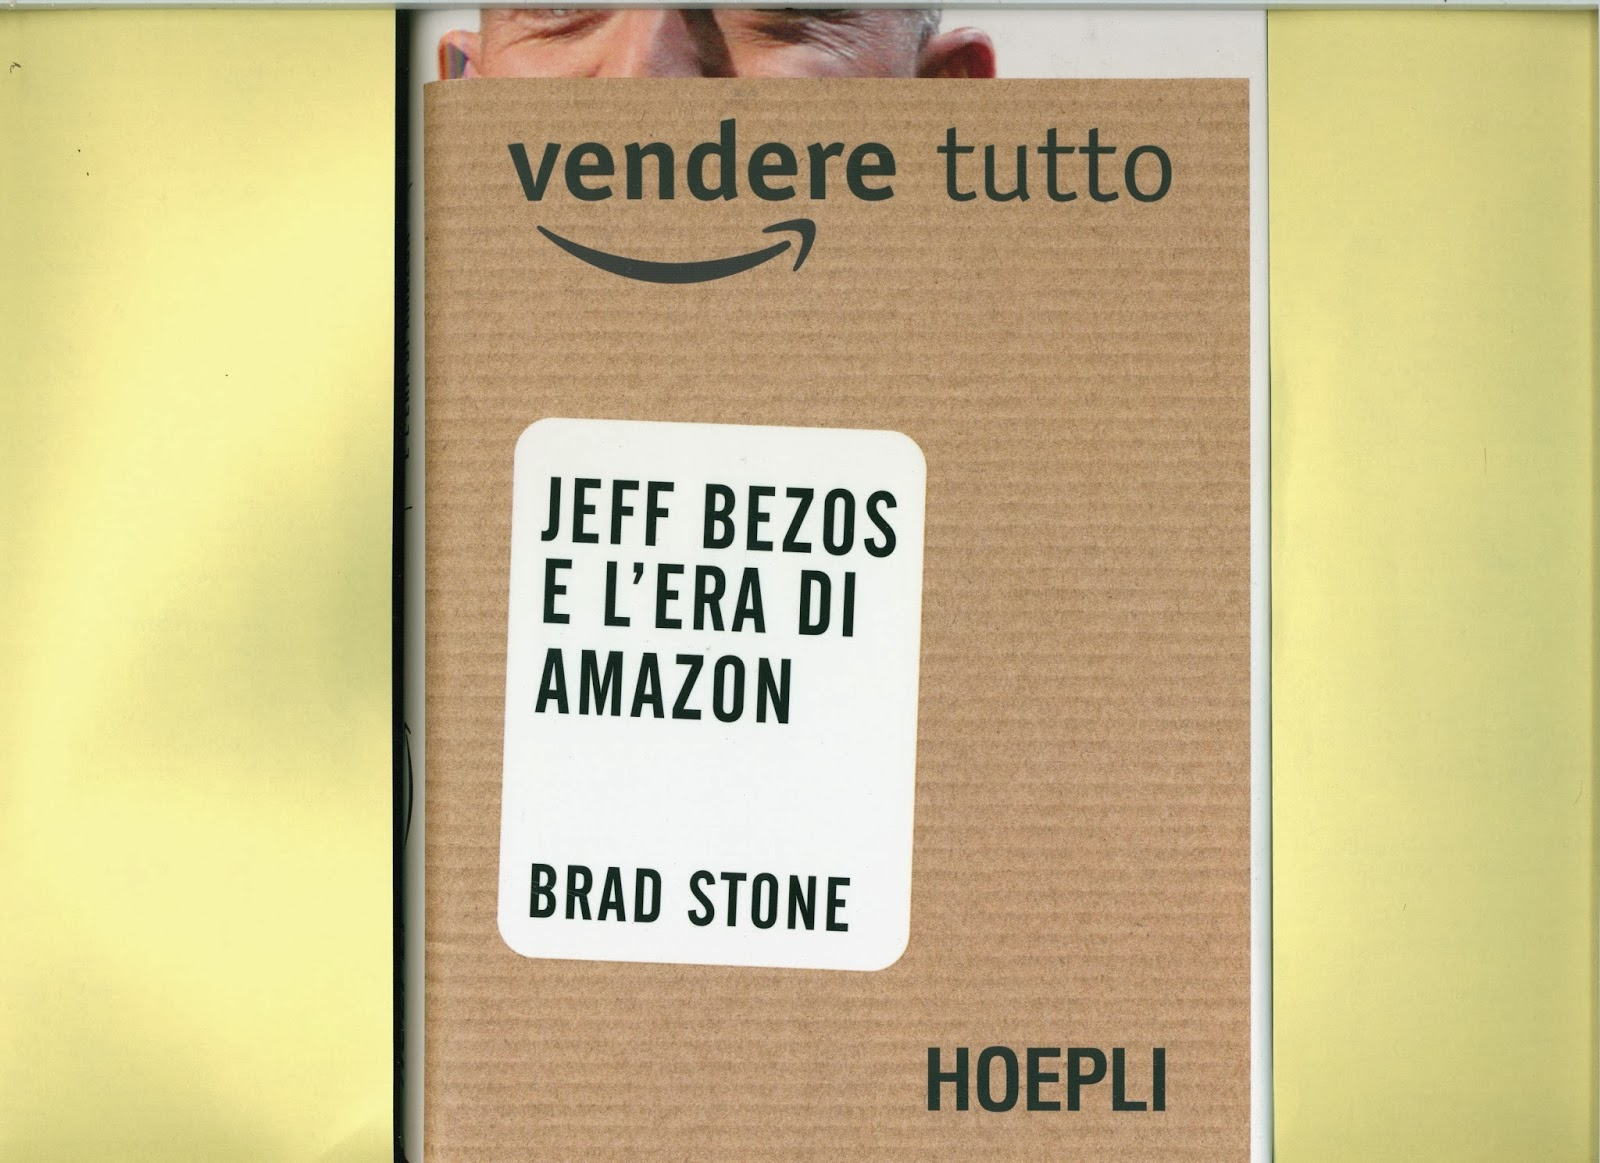 Libreria torriani di canzo vendere tutto l 39 era di amazon for Libreria amazon